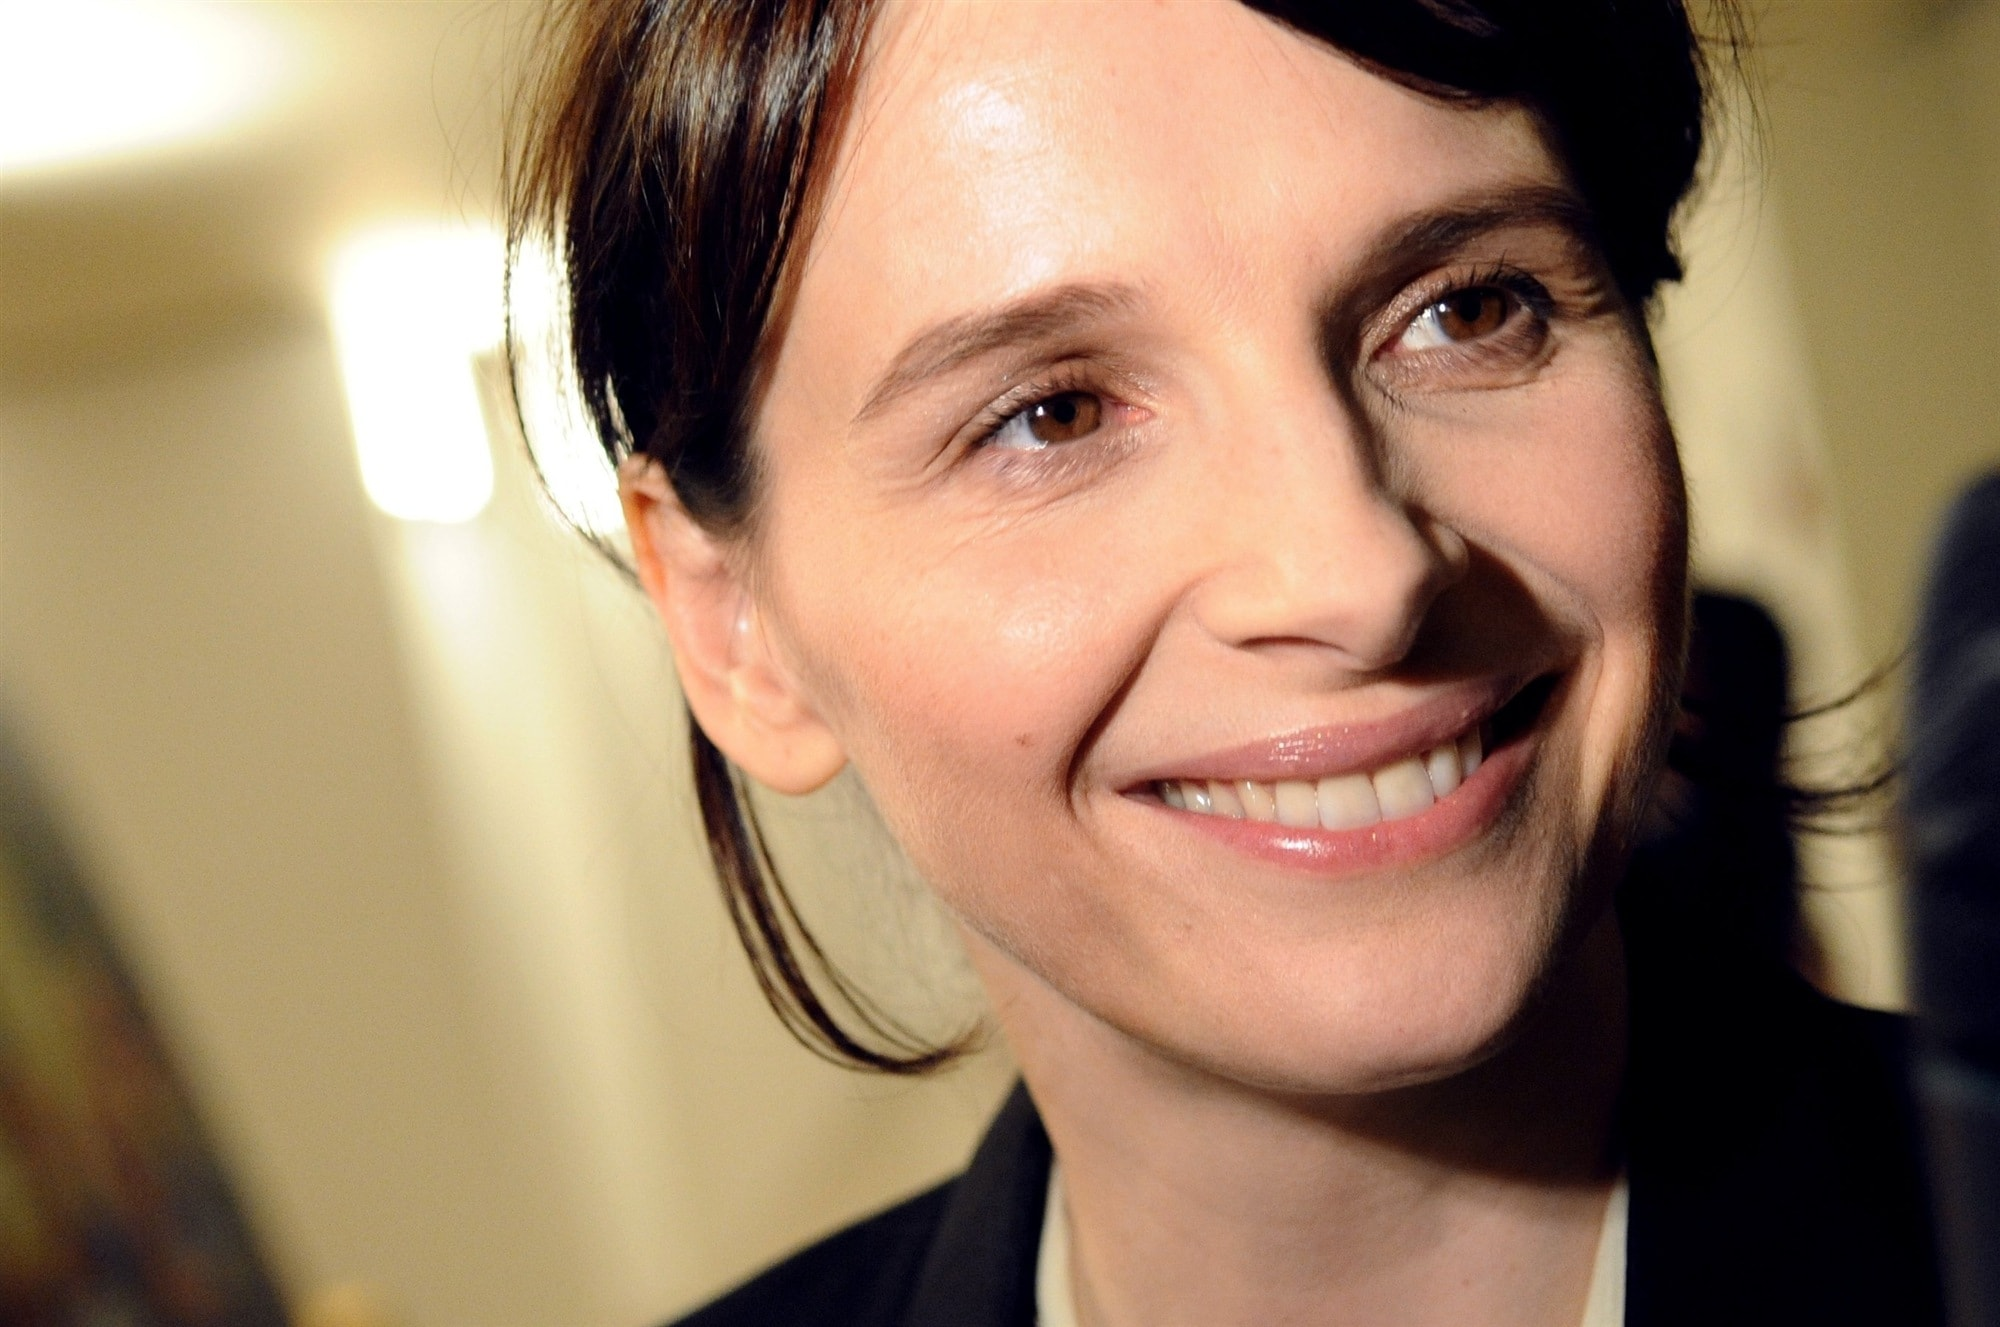 Juliette Binoche HQ wallpapers